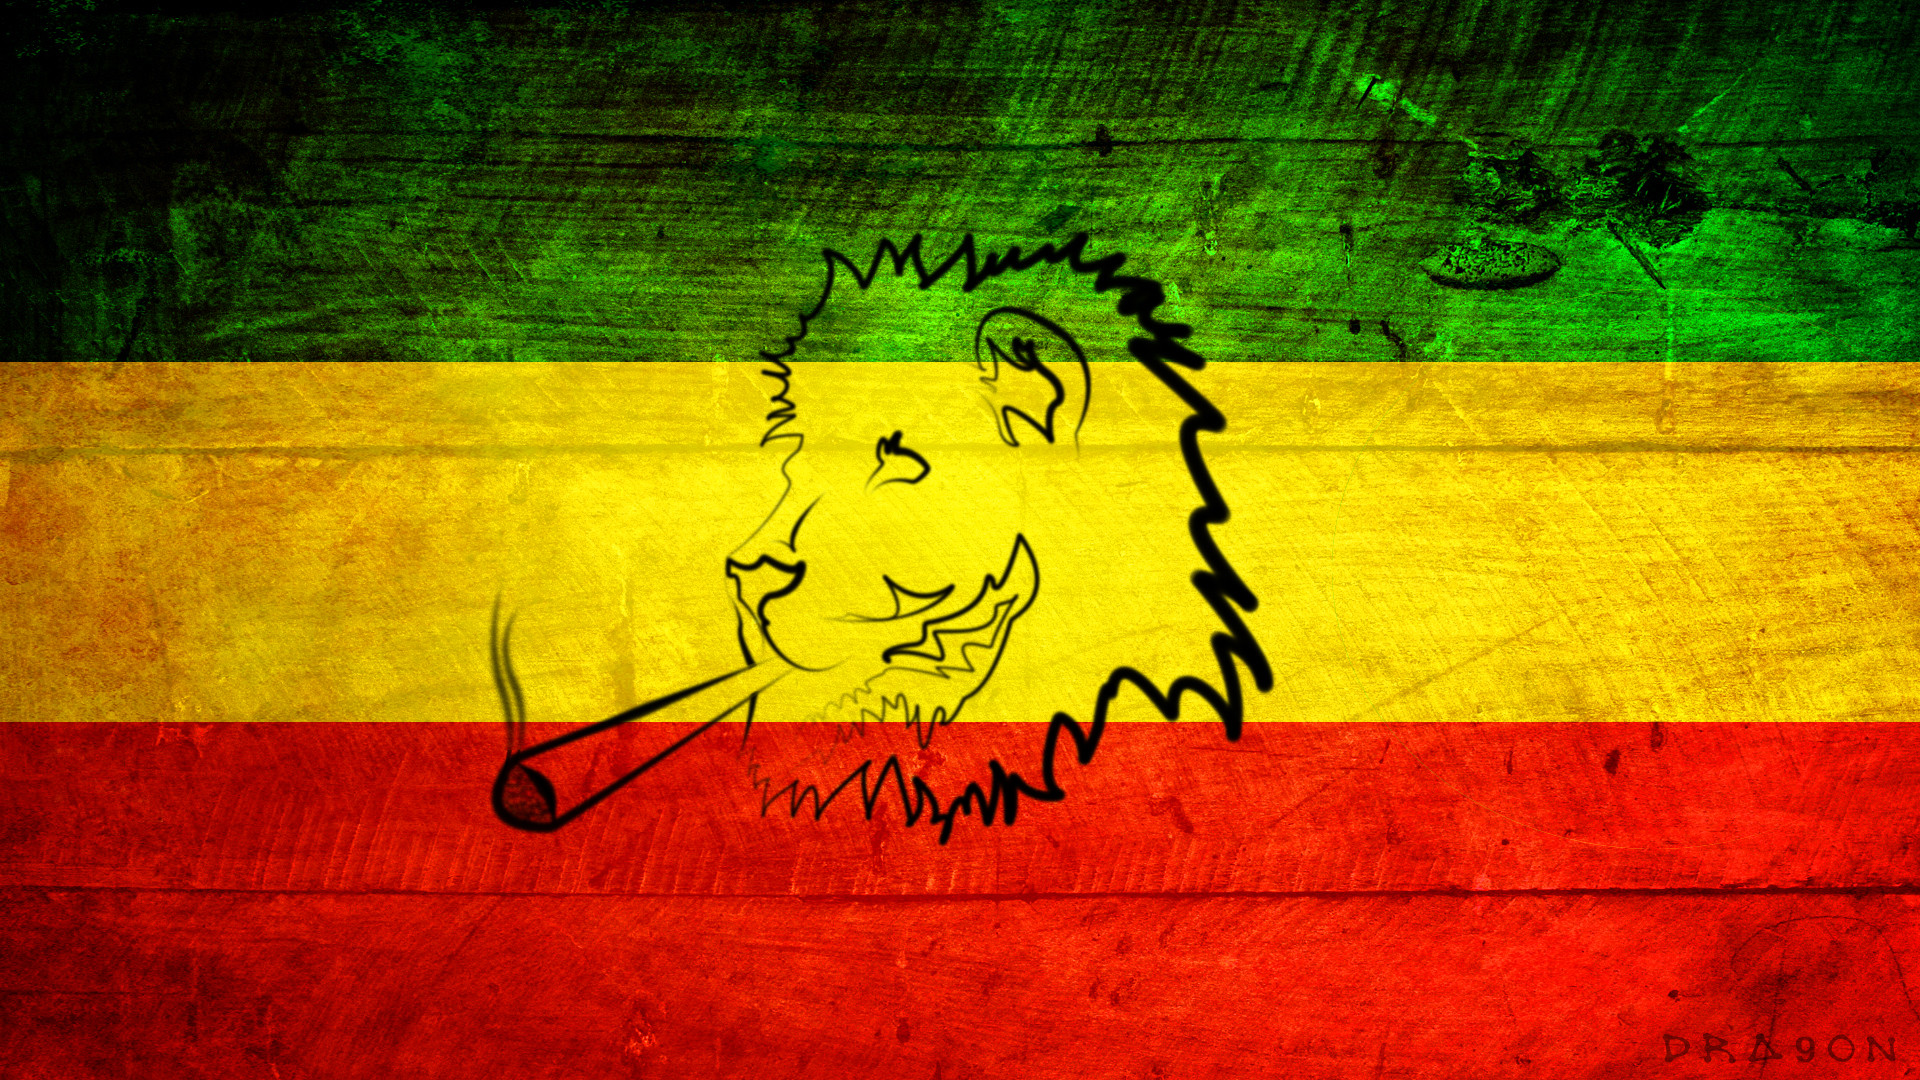 1920x1080 Rasta Lion With Dreads - wallpaper.